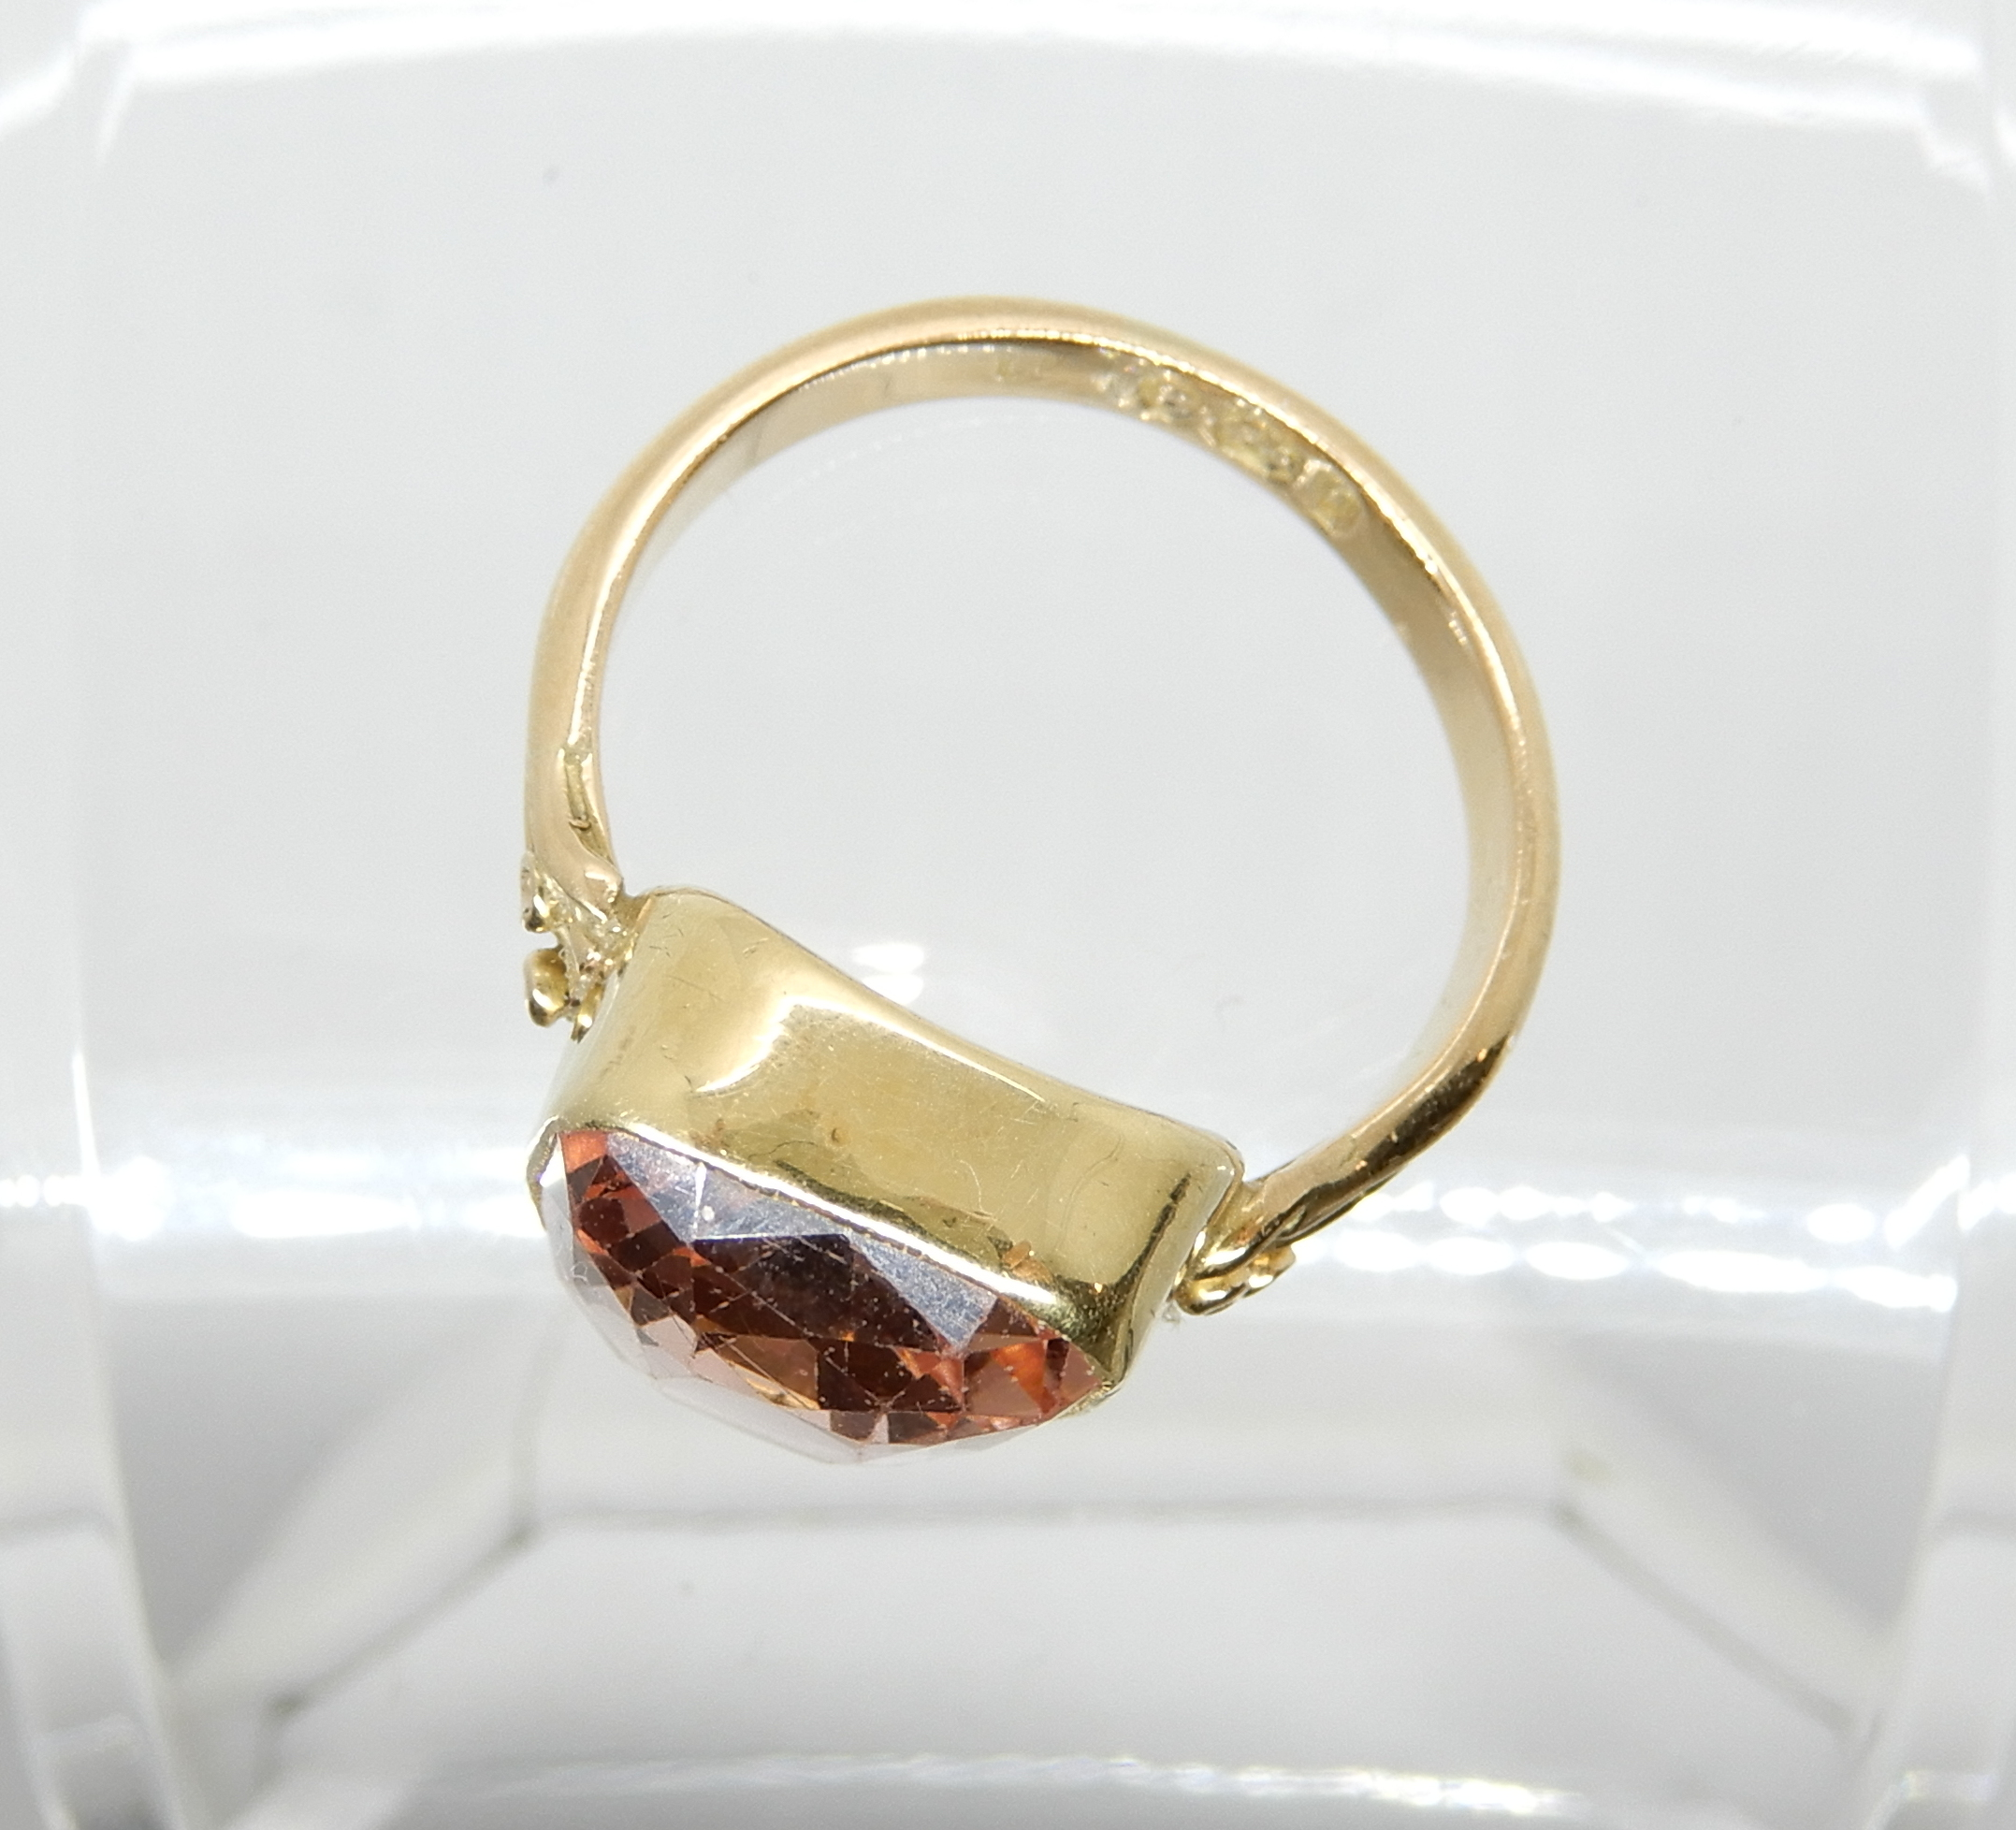 Lot 13 - An 18ct gold ring set with a large pink gem, size approx M, weight 6.7gms Condition Report: Shank